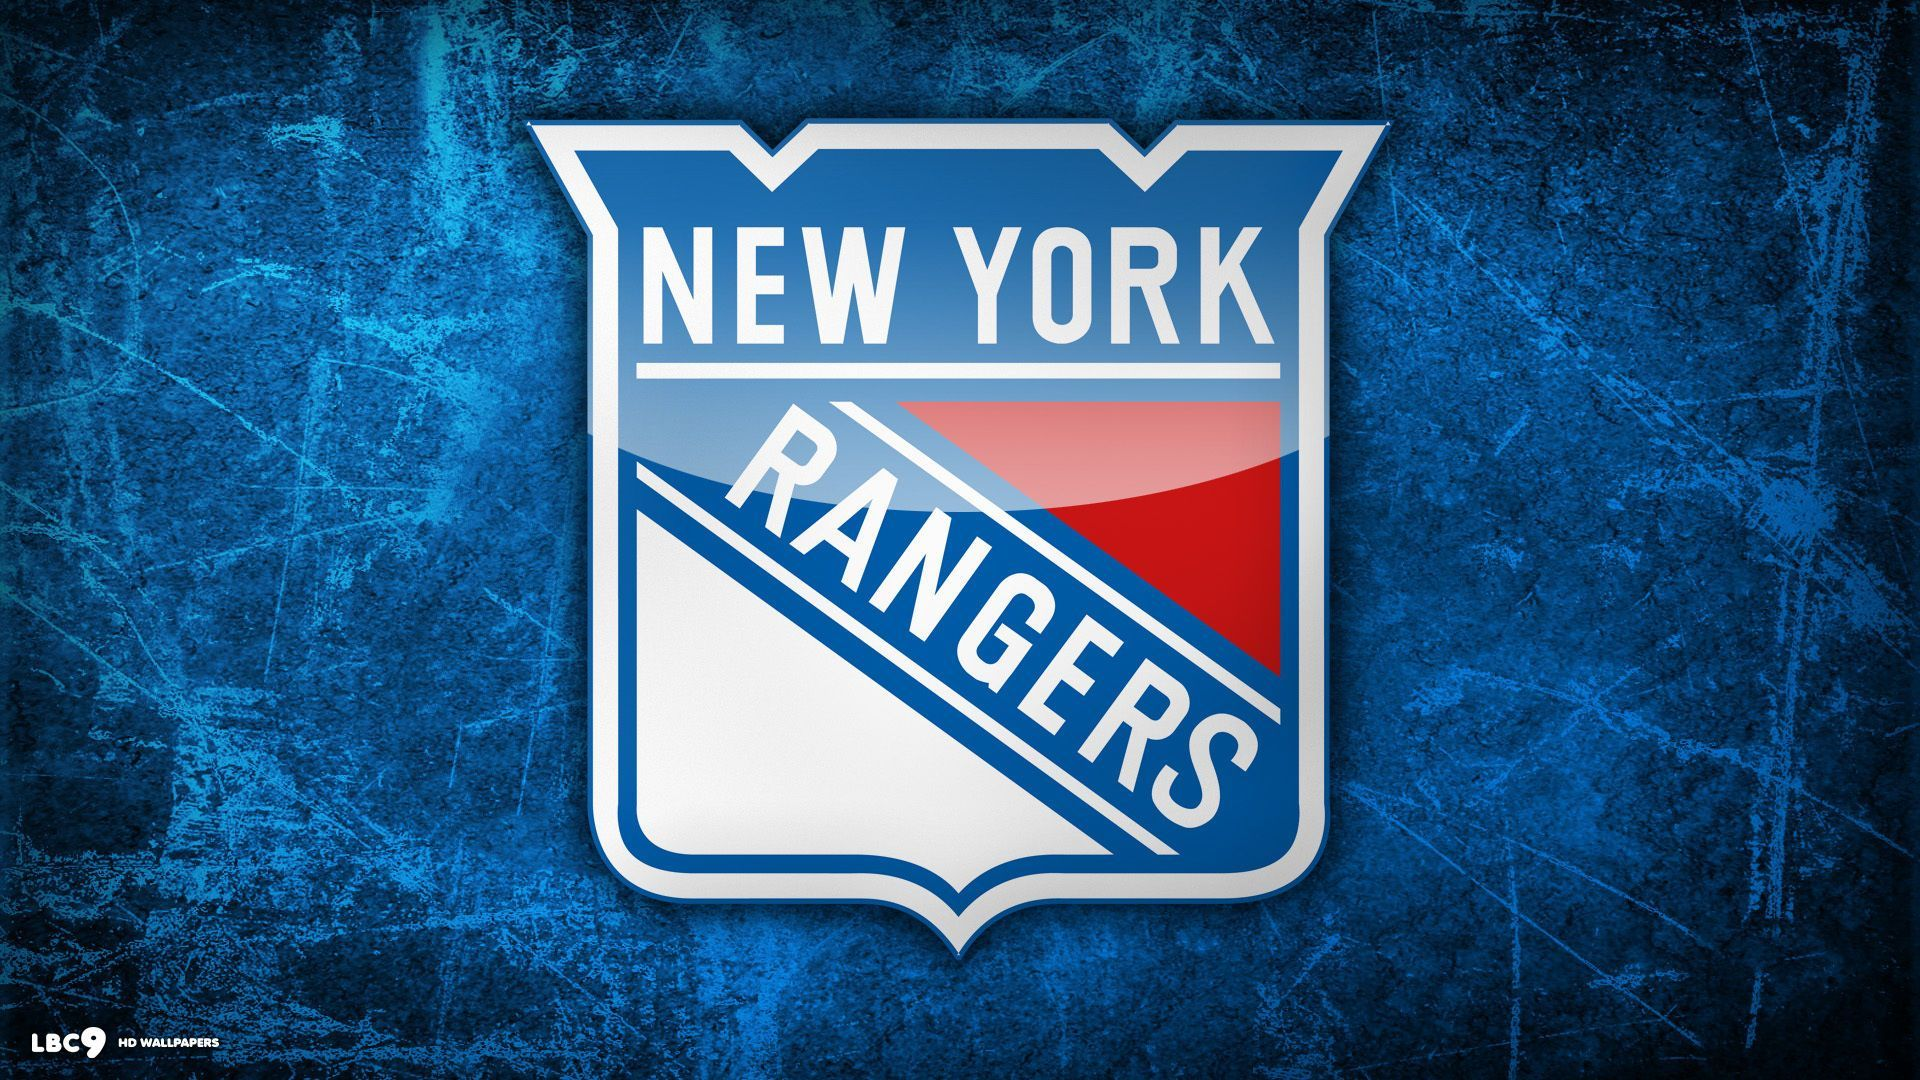 New York Rangers Wallpaper HD